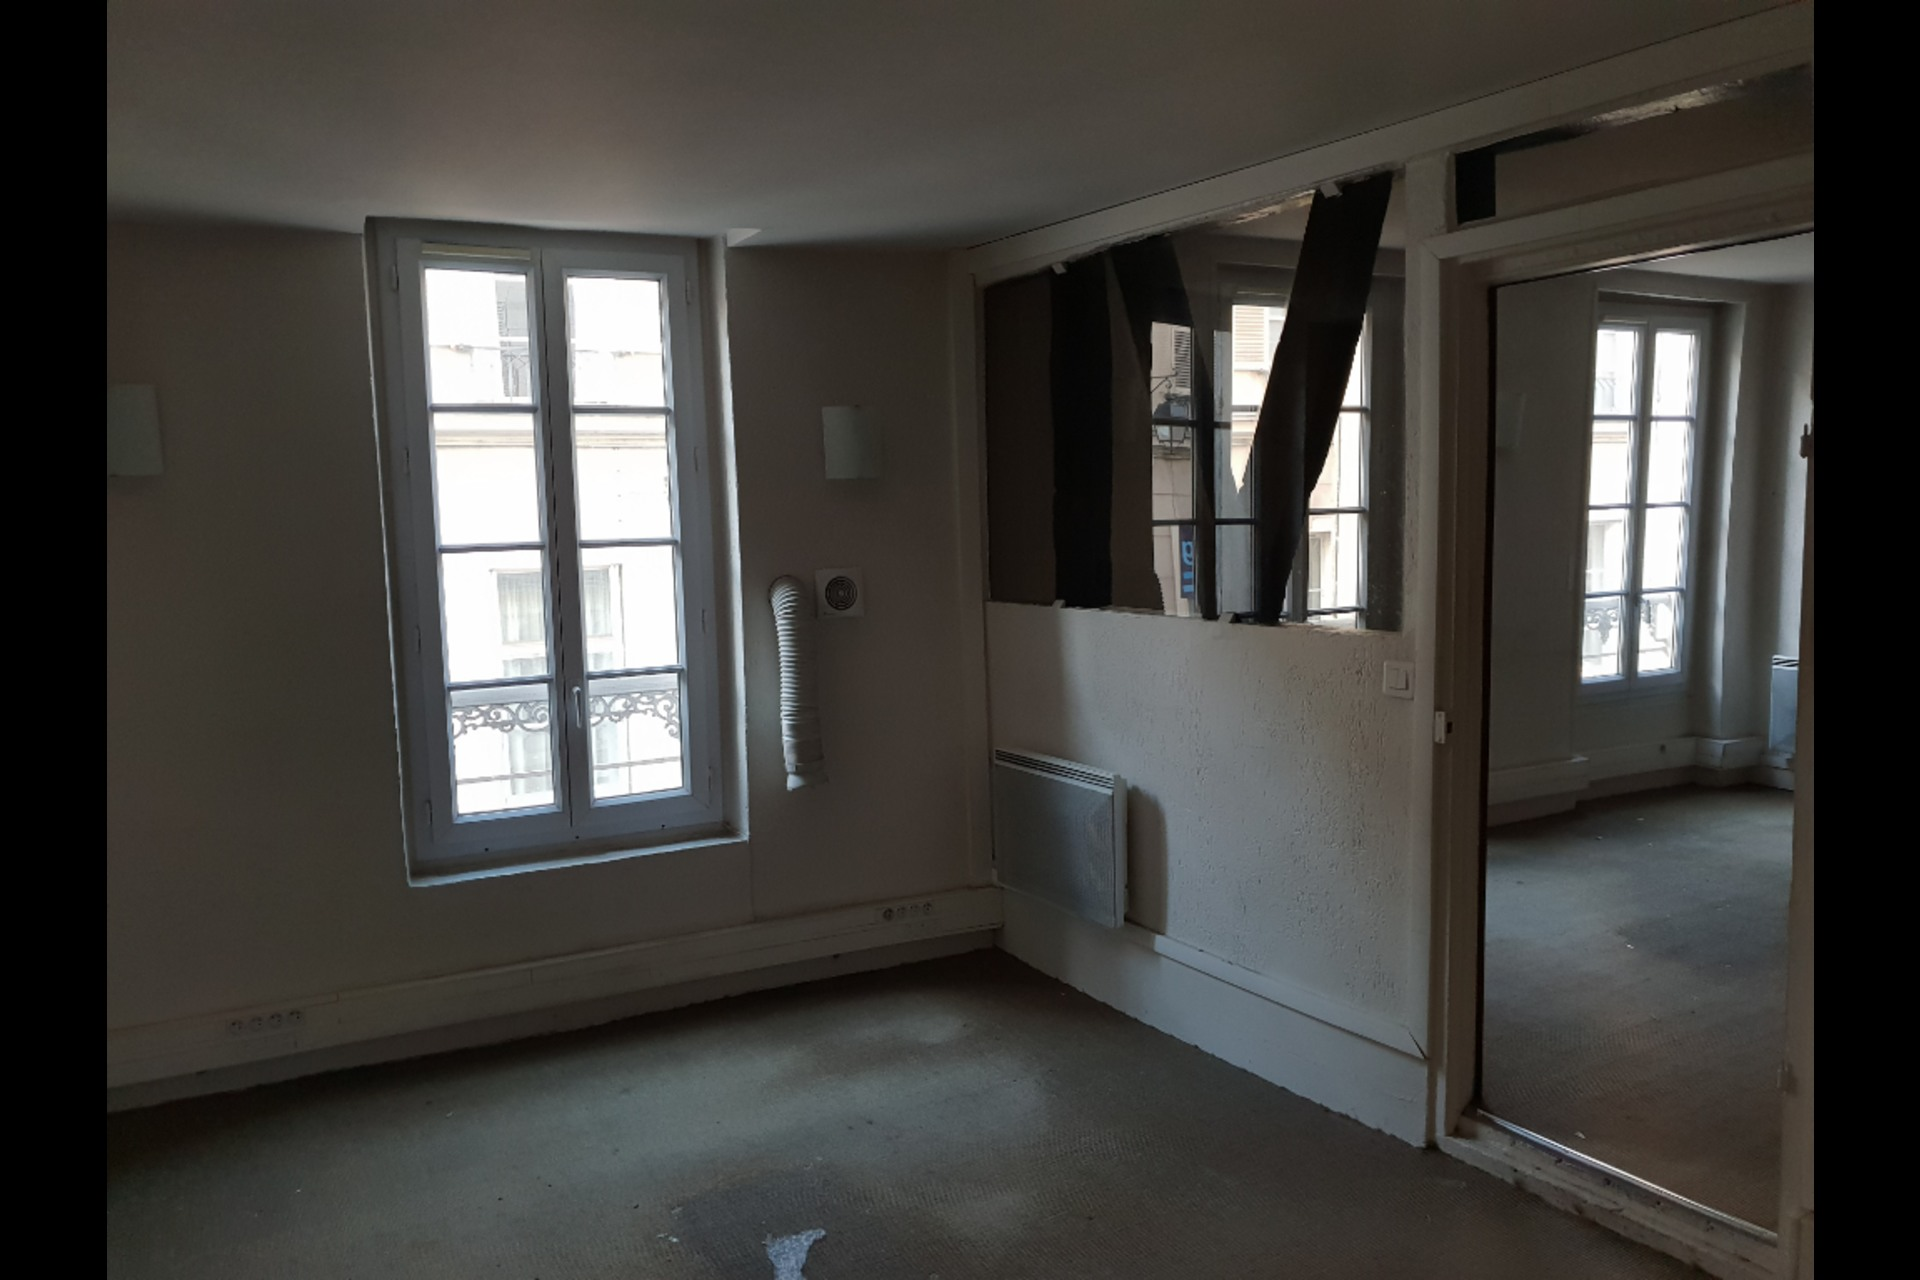 Commercial Use For rent saint germain en laye - 3 rooms